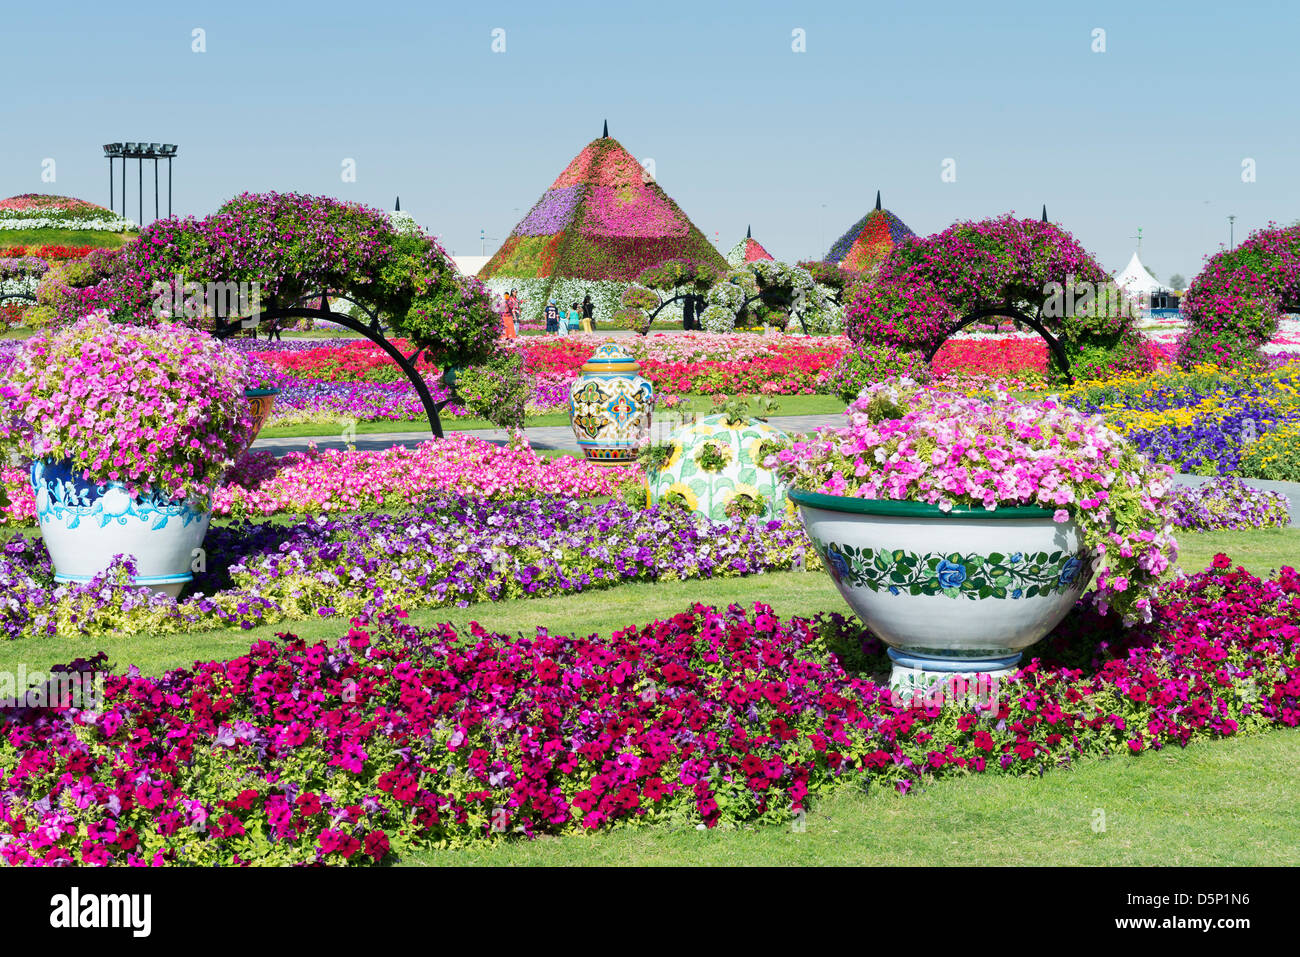 Miracle Garden in Dubai, Opened in March 2013 and claimed to be World's largest flower garden; United Arab Emirates - Stock Image